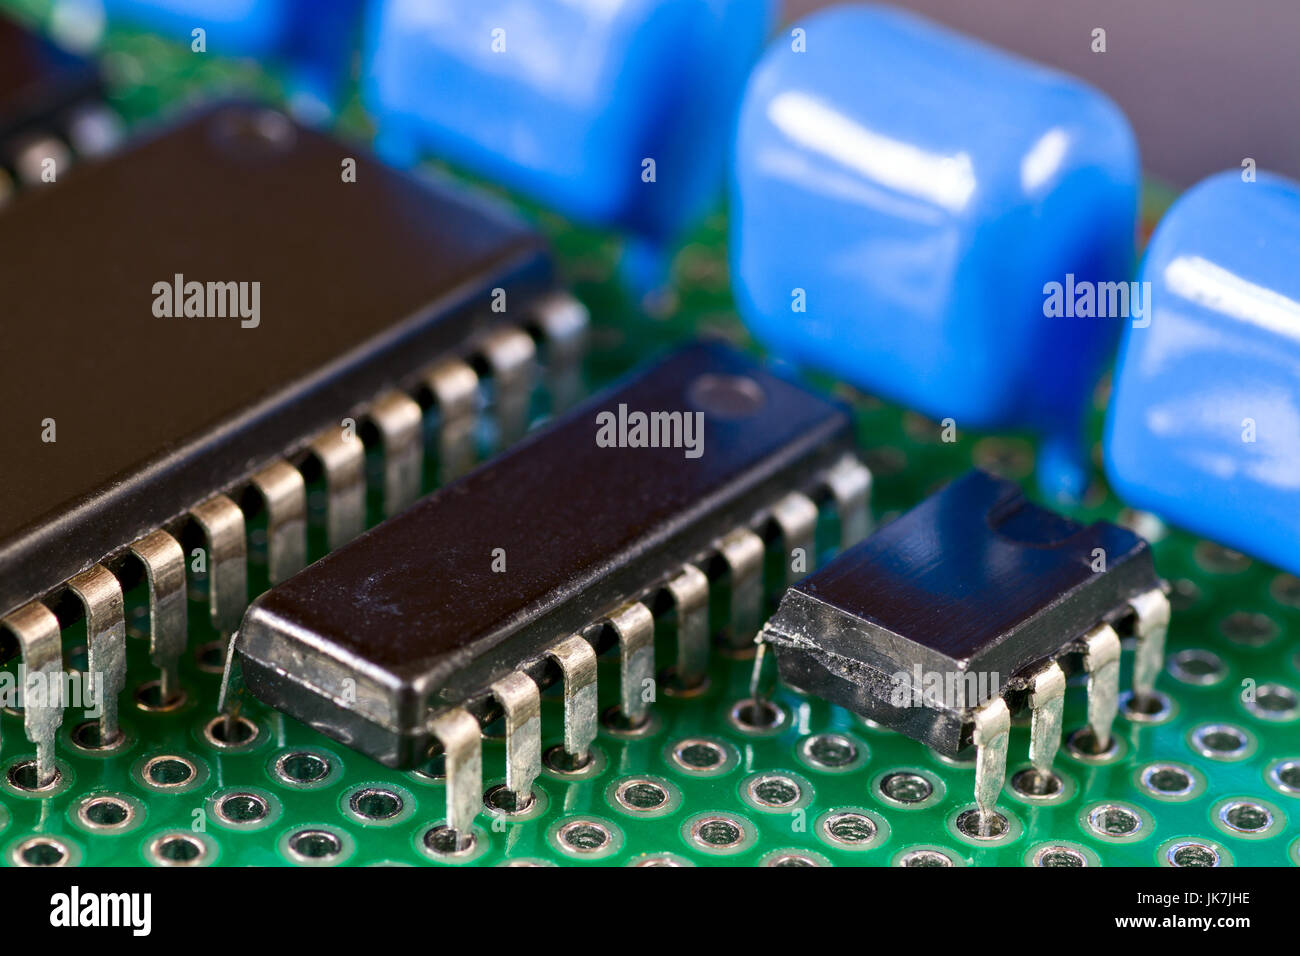 Printed Circuit Board Stock Photos As Before We Can Copy The Onto A And Integral Circuits Capacitors On Image